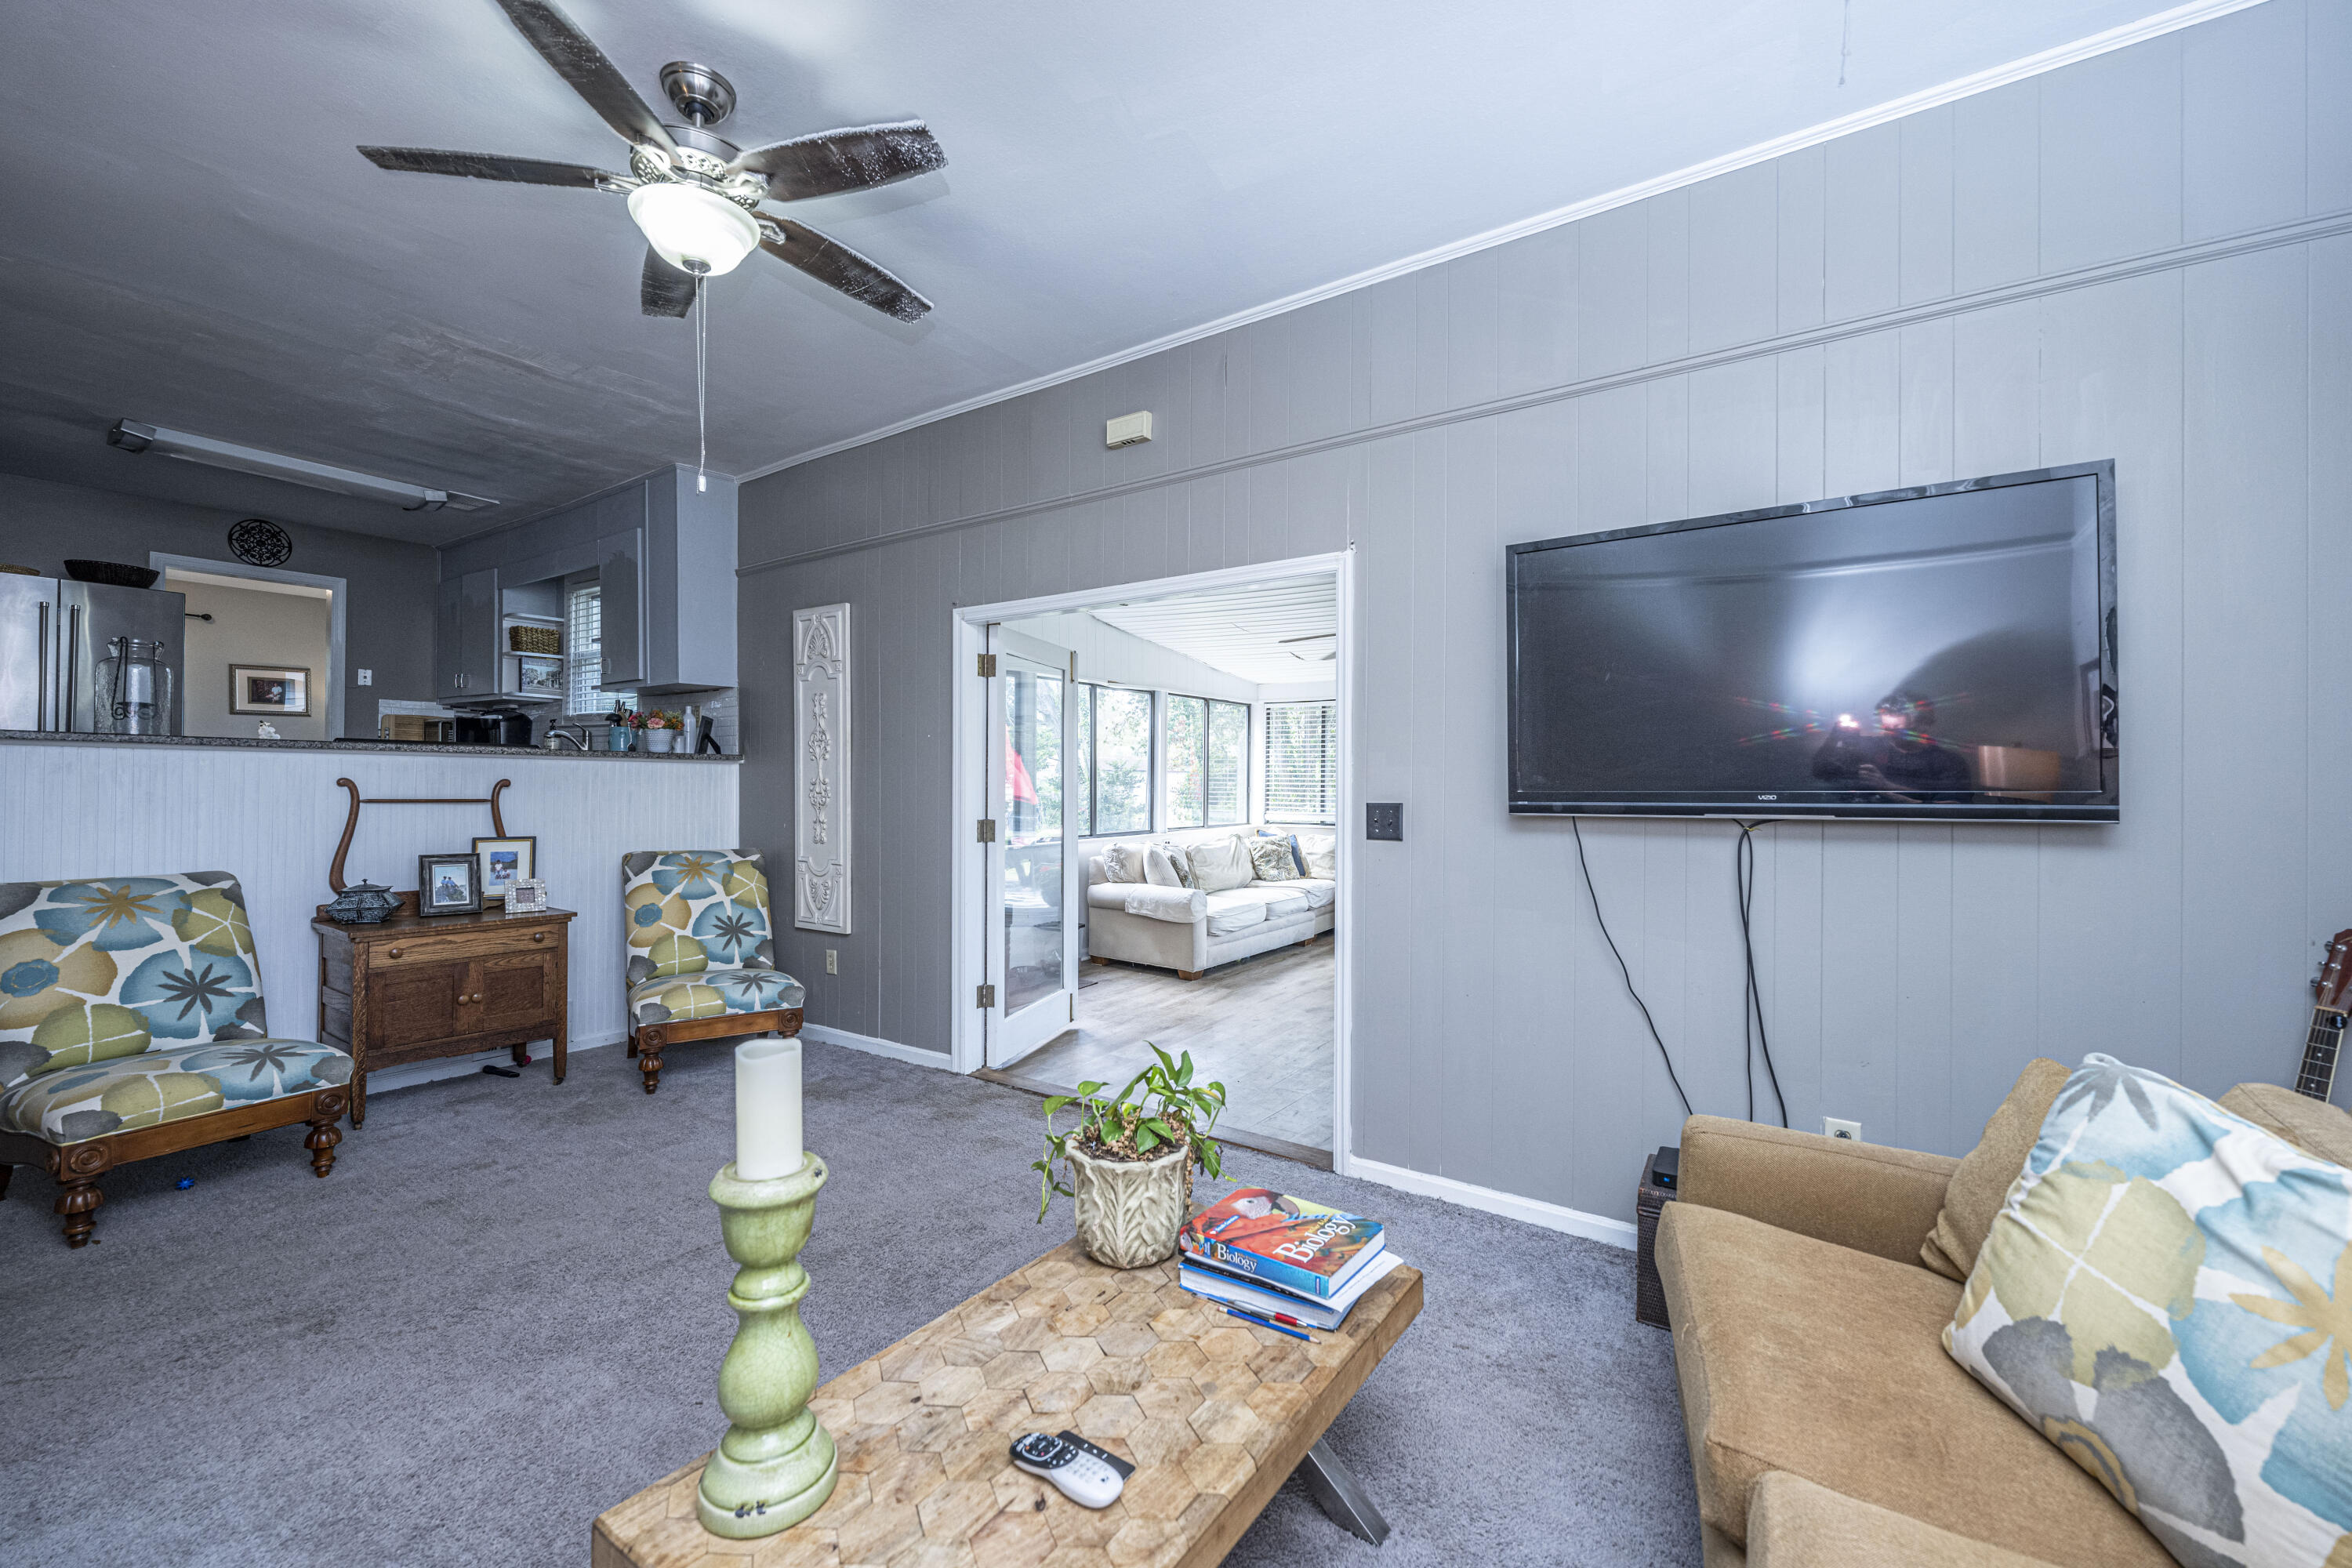 Stiles Point Homes For Sale - 775 Sparrow, Charleston, SC - 15